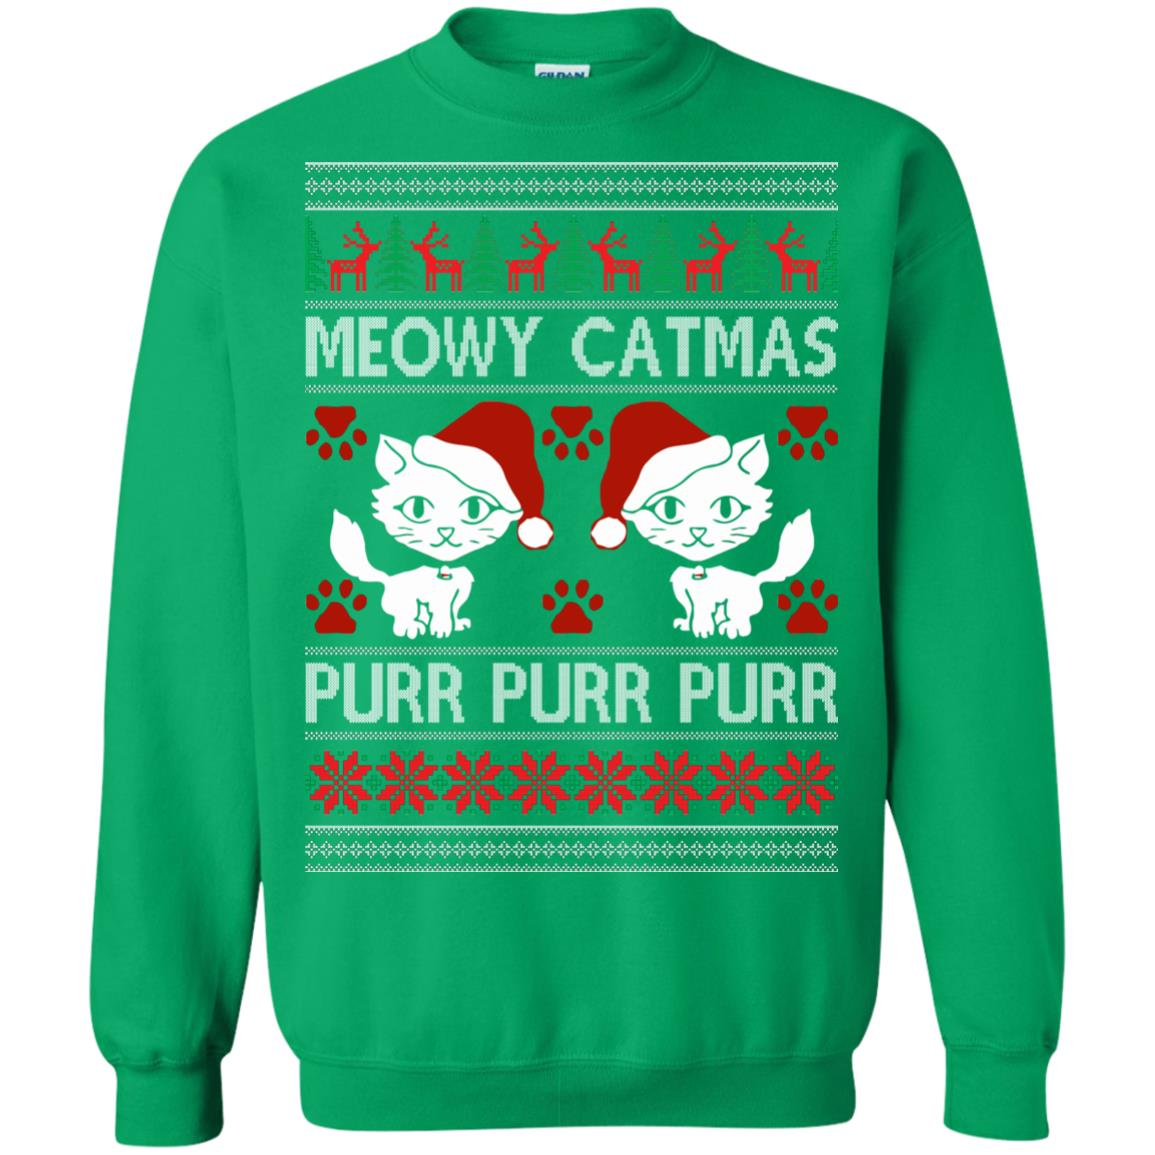 image 1172px Meowy Catmas Purr Purr Christmas Sweater, Cat Lover Sweatshirt